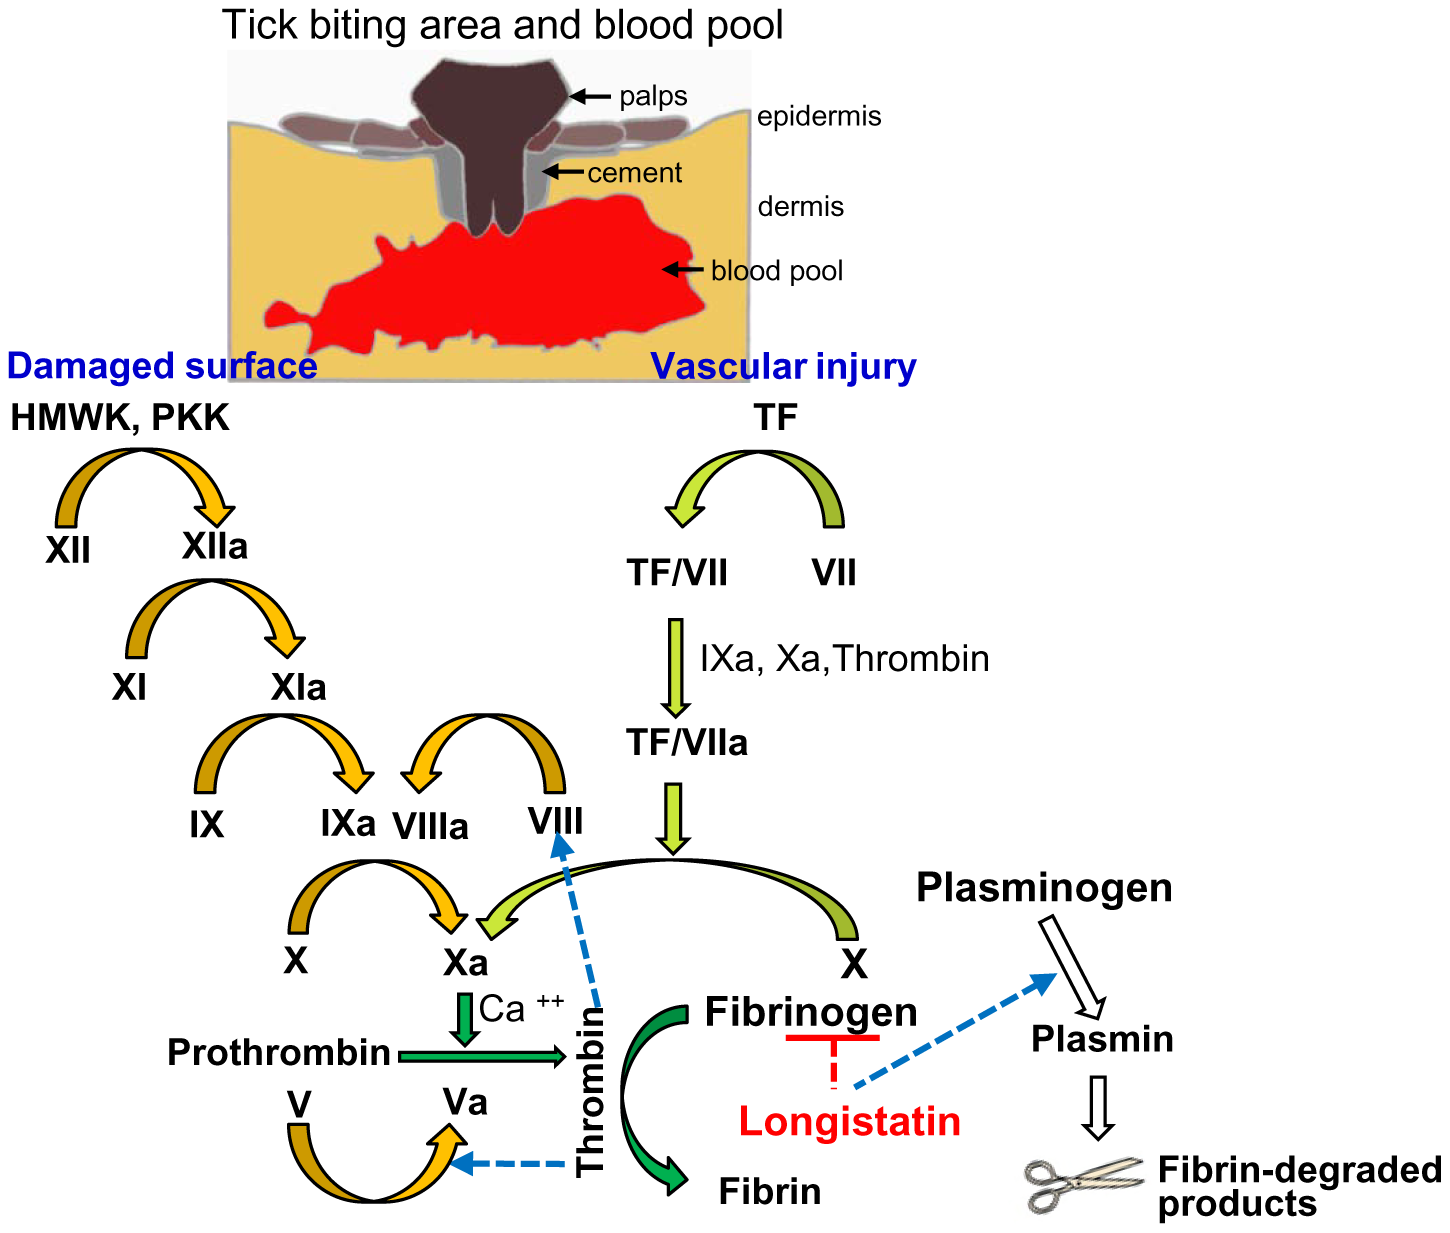 A schematic diagram showing roles of longistatin in blood coagulation and fibrinolysis events.